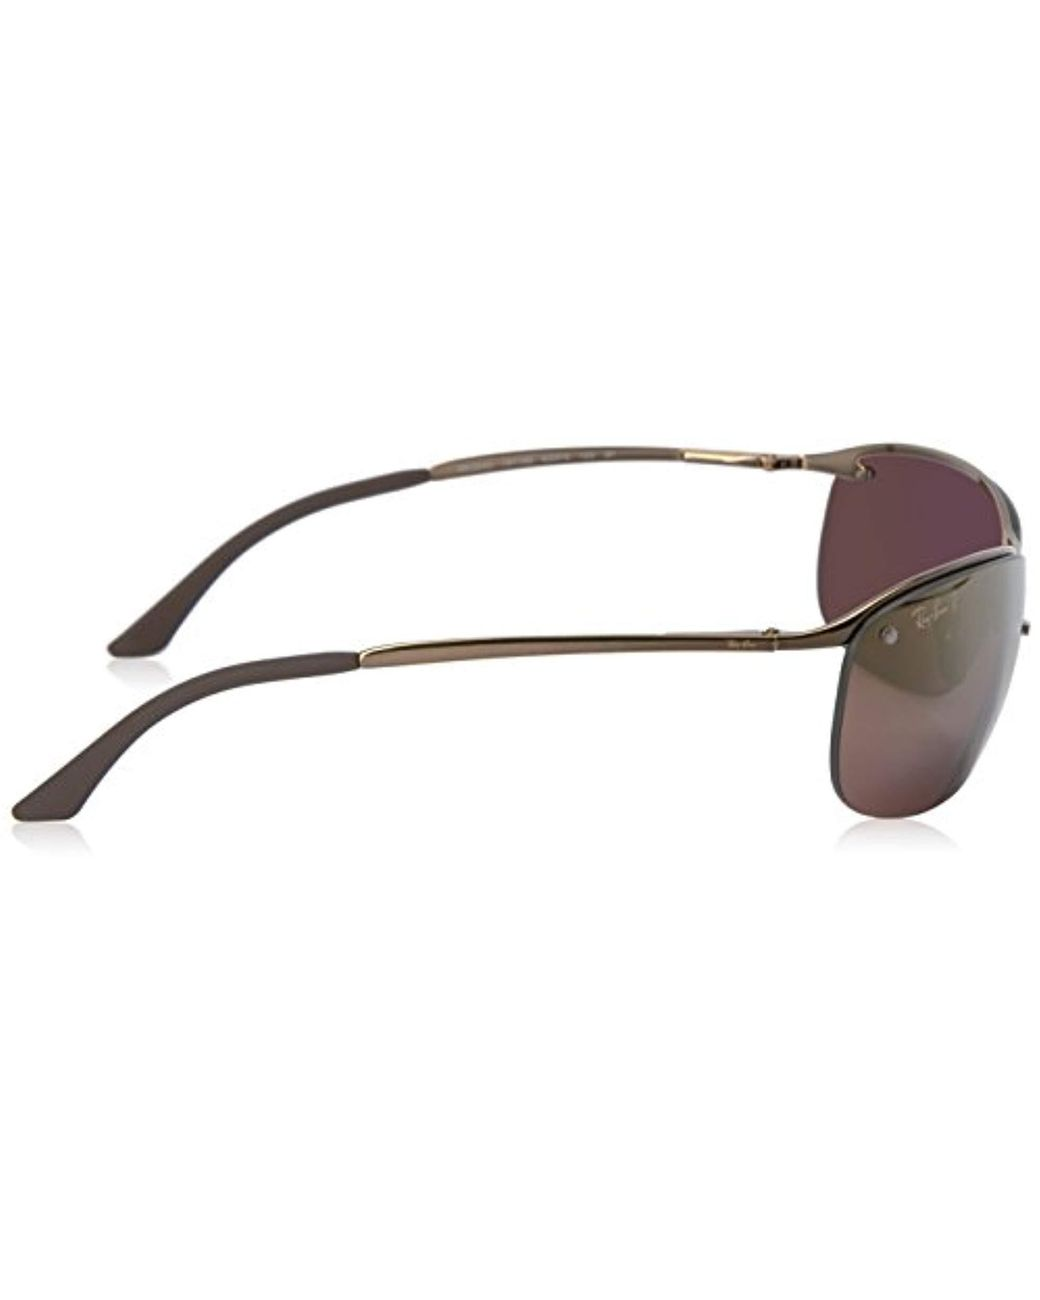 adb992a08611d7 Lyst - Ray-Ban Rb3542 Chromance Lens Wrap Sunglasses in Brown - Save 2%